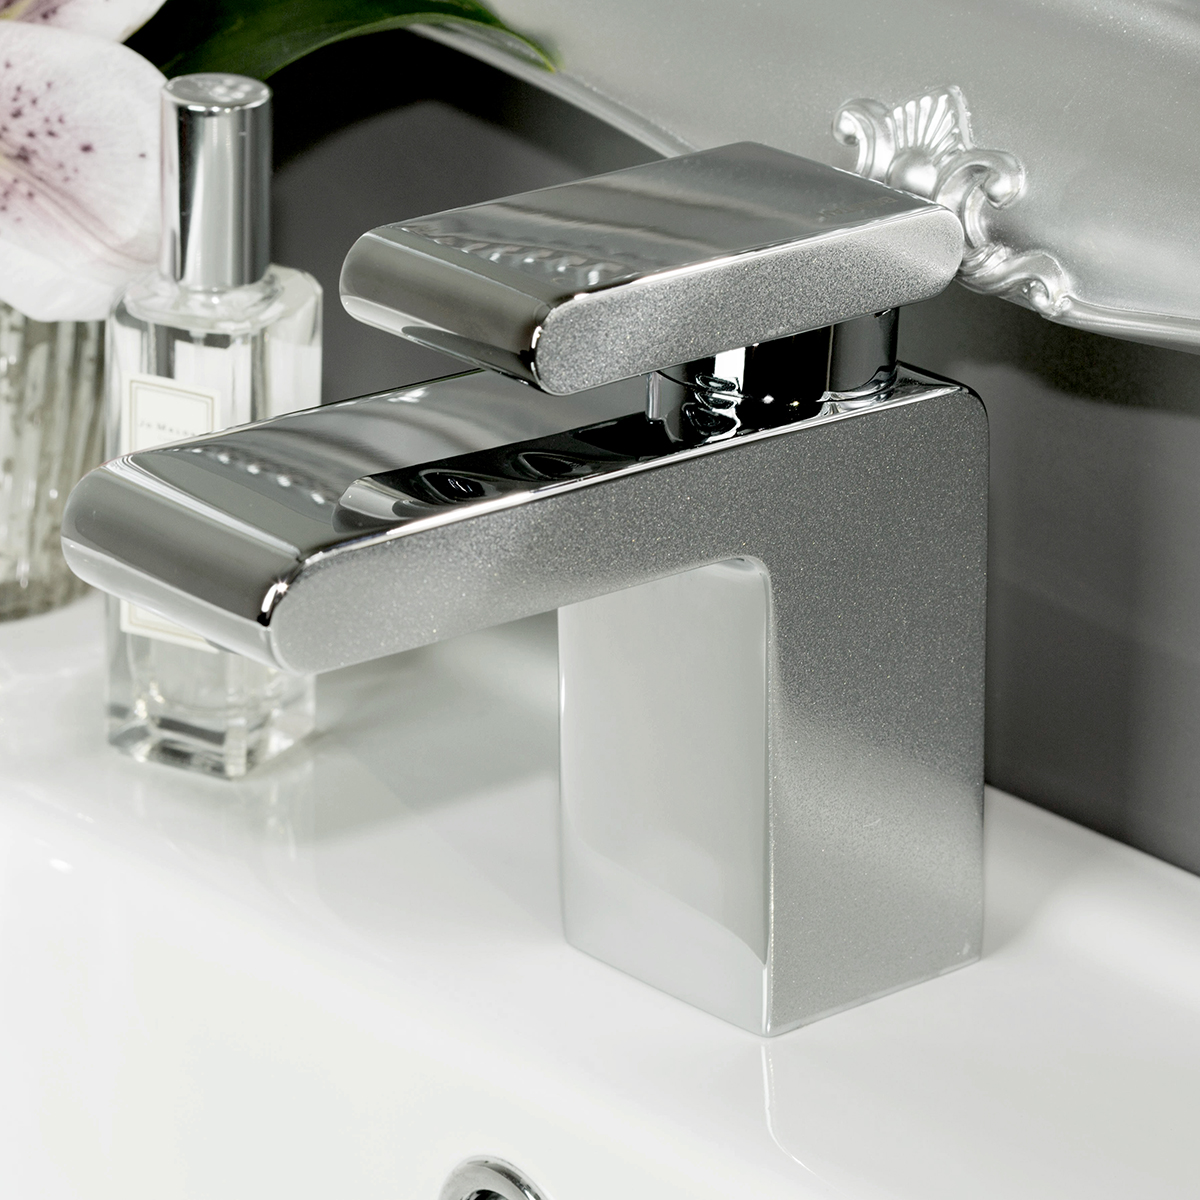 Bristan Metallix Pivot Basin Mixer Tap with Clicker Waste - Silver Sparkle